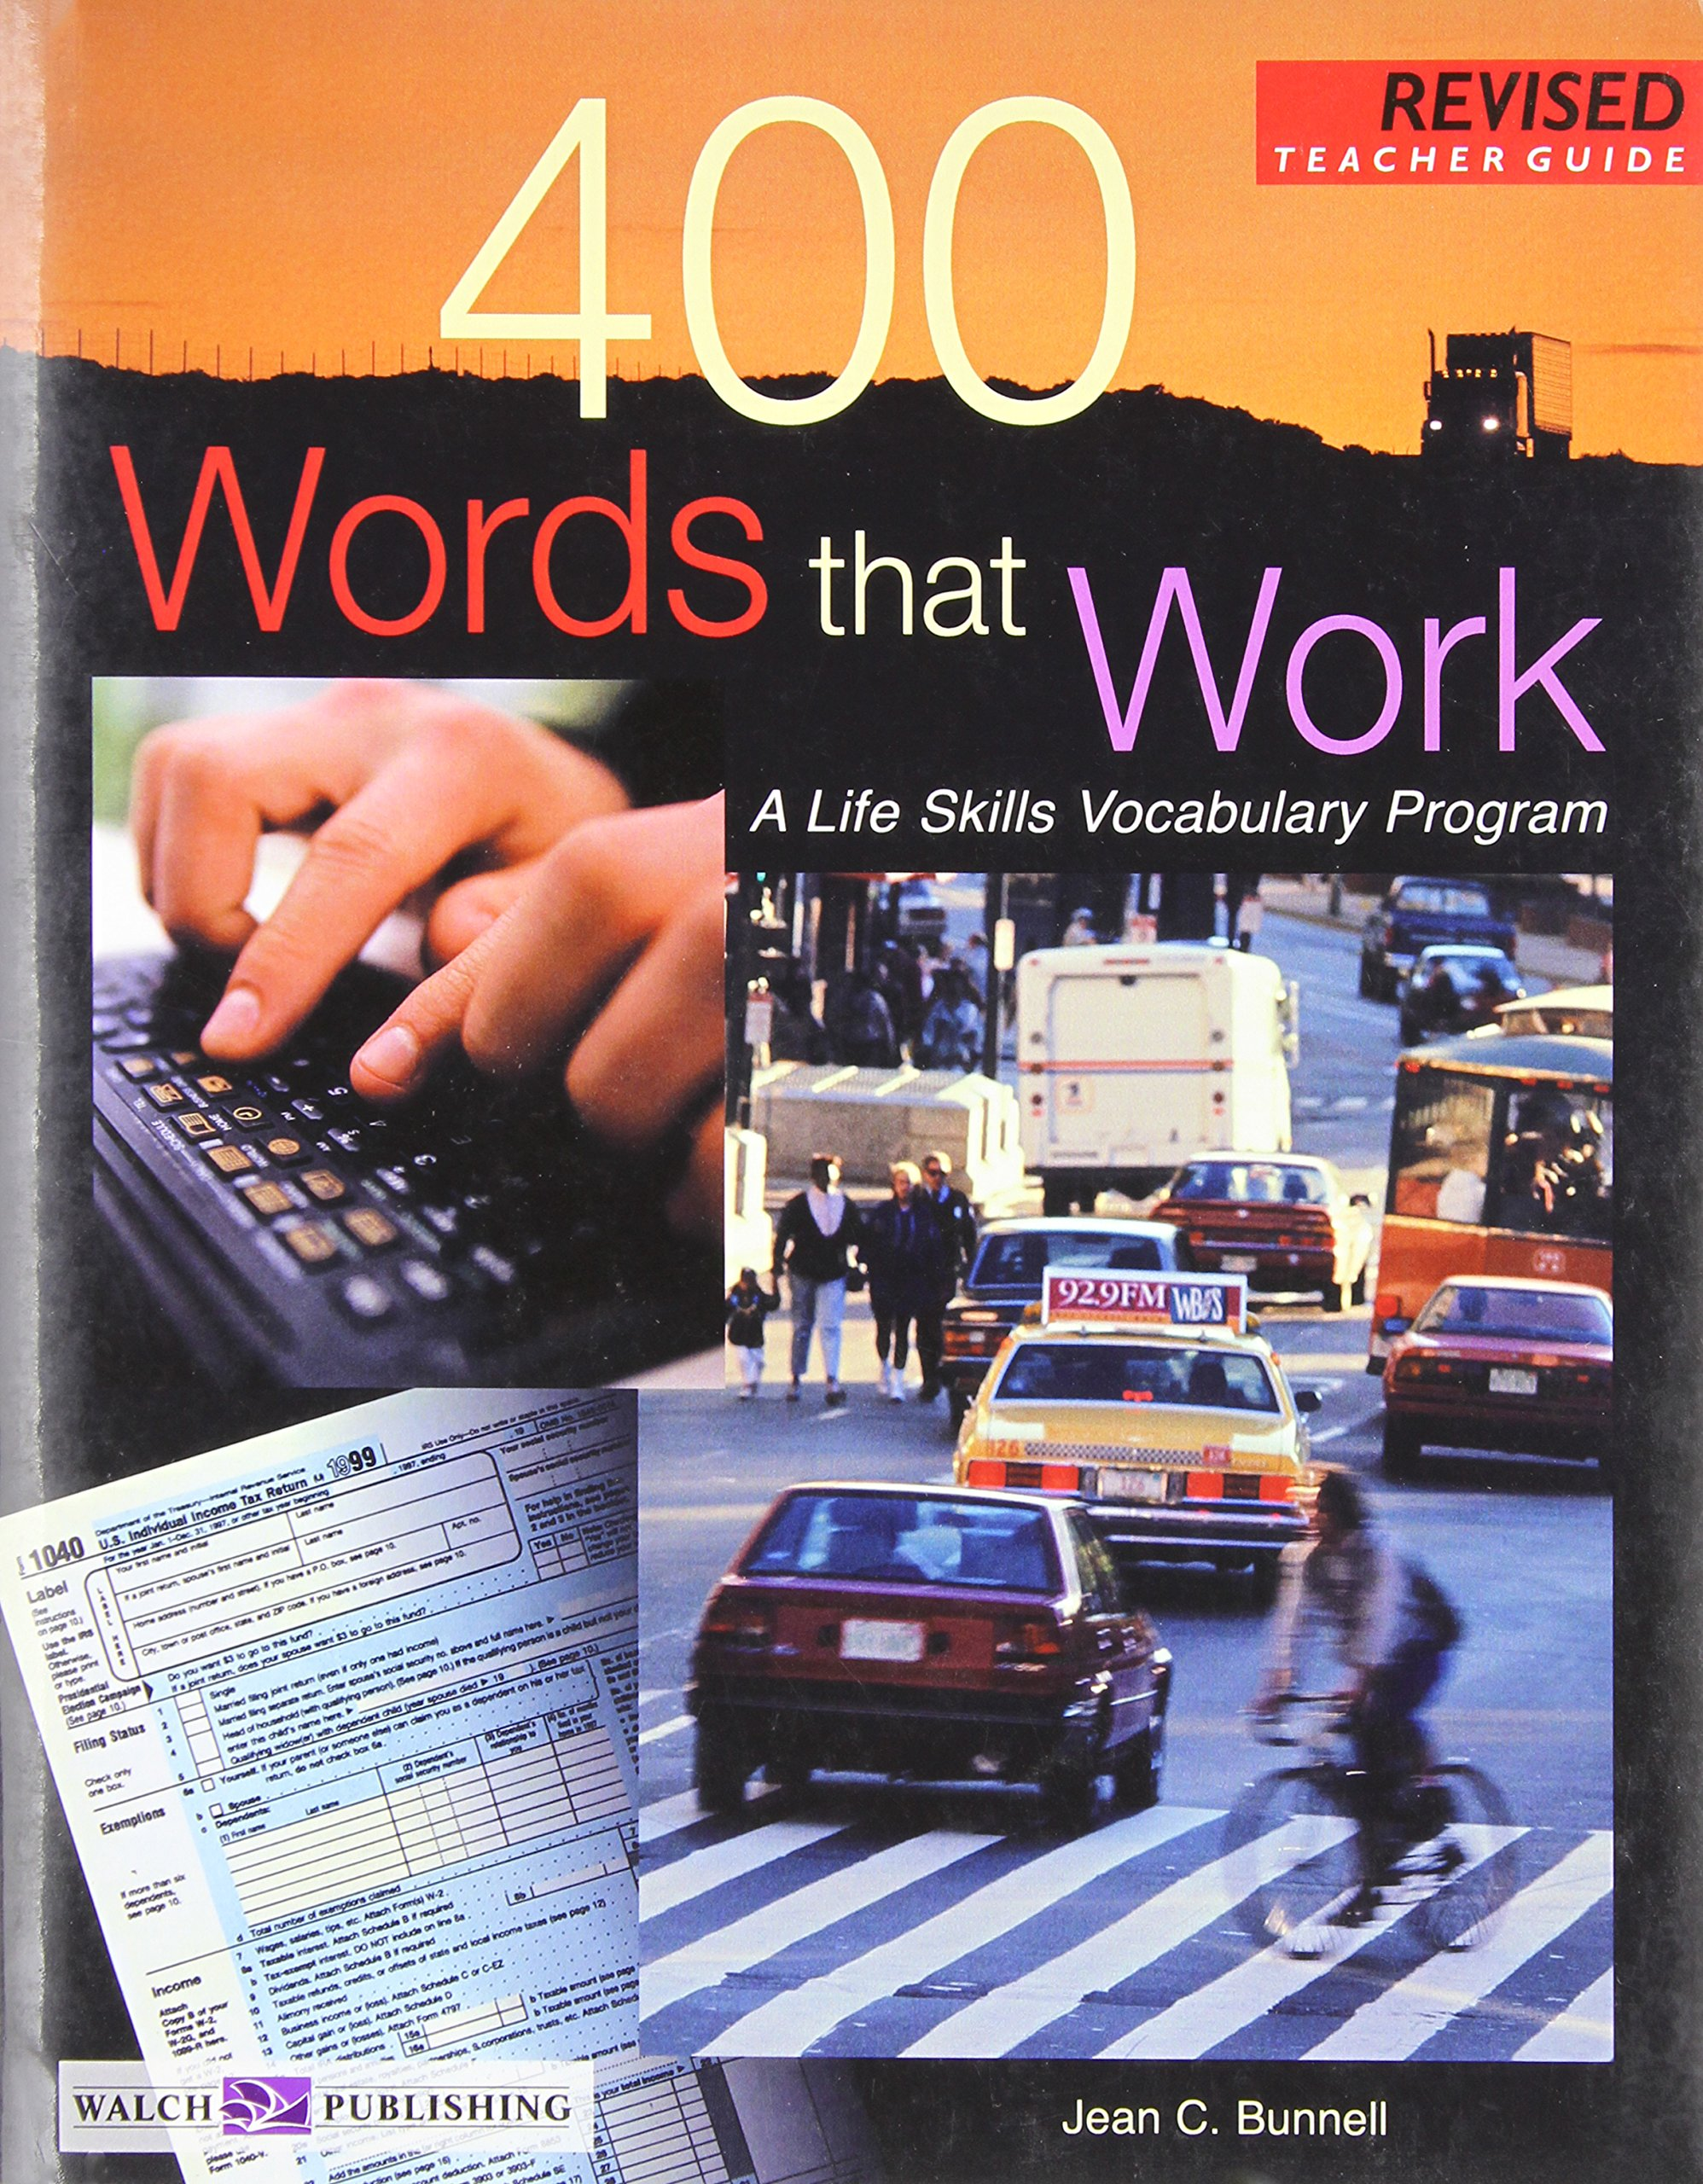 Download 400 Words That Work : A Life Skills Vocabulary Program (Teacher's Guide) PDF